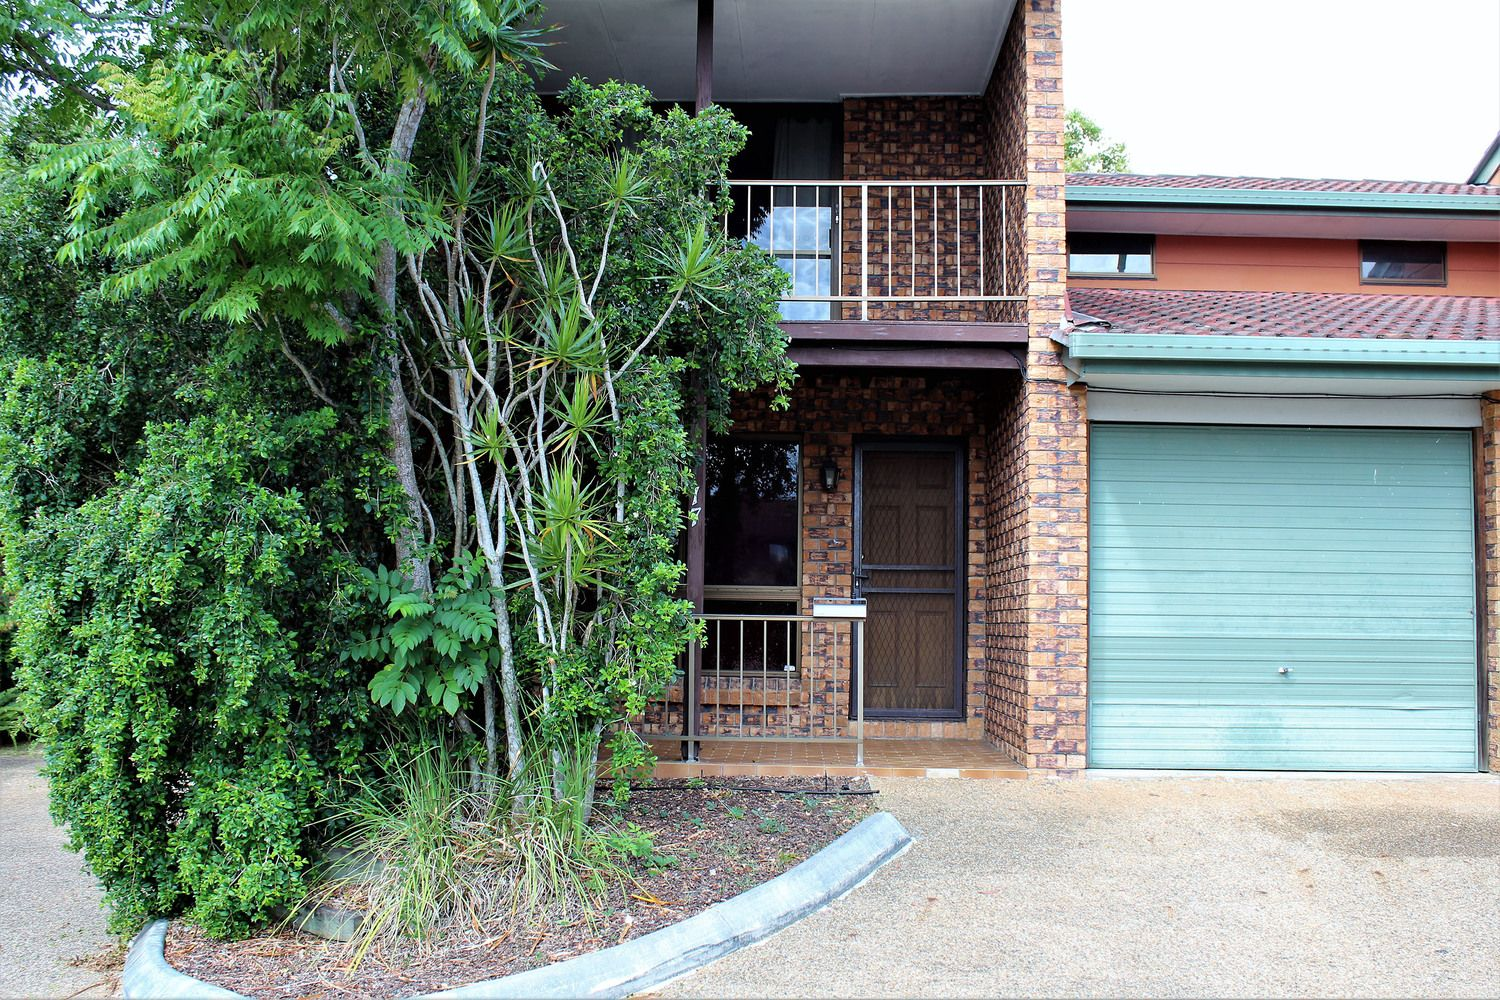 17/24 Chambers Flat Rd, Waterford West QLD 4133, Image 0